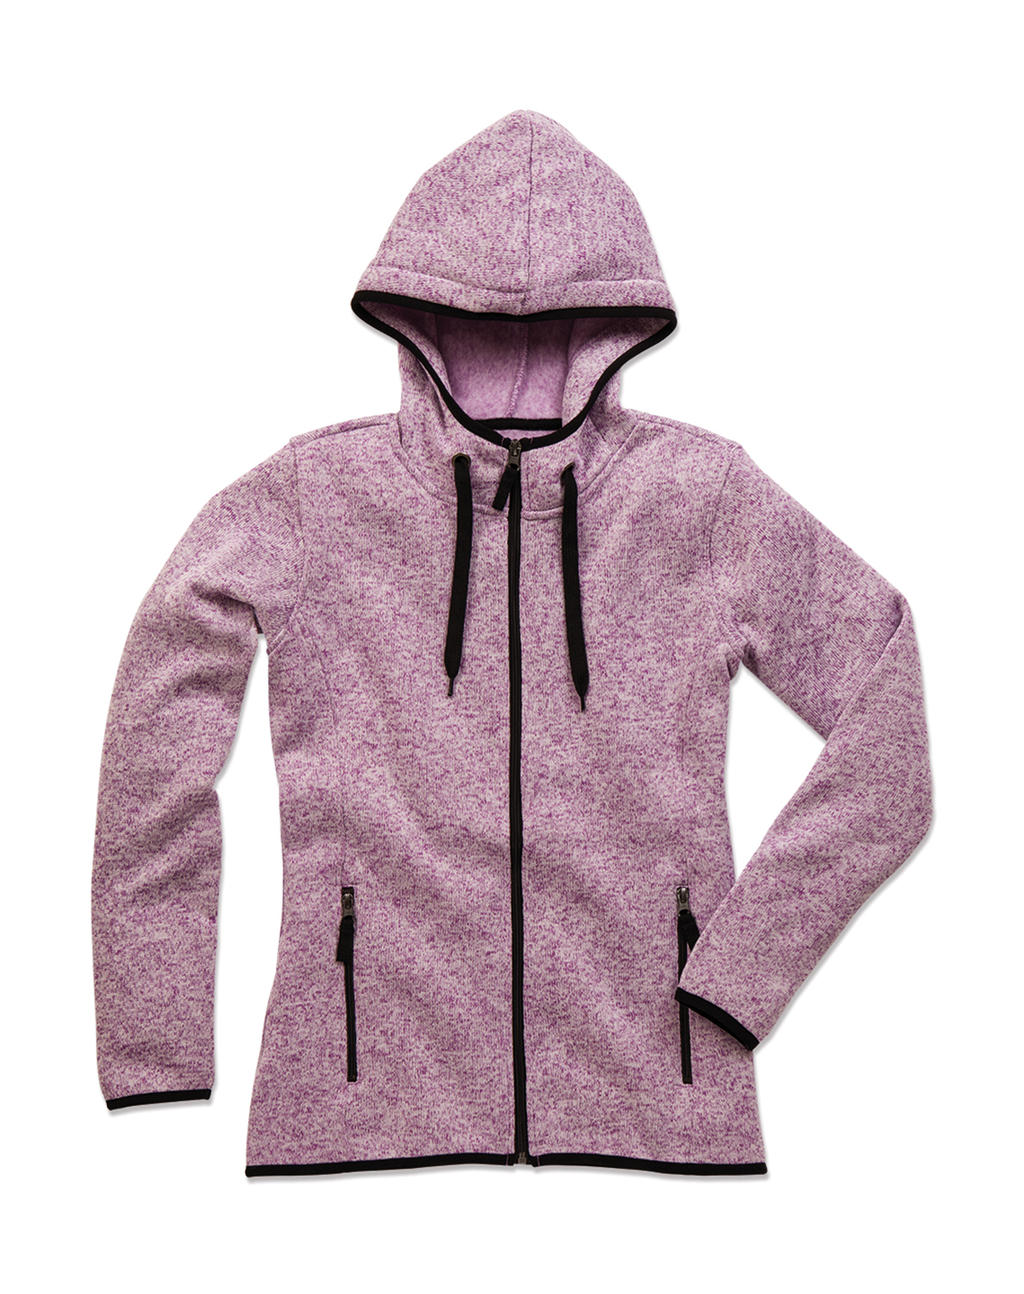 Active Knit Fleece Jacket Women Purple melange